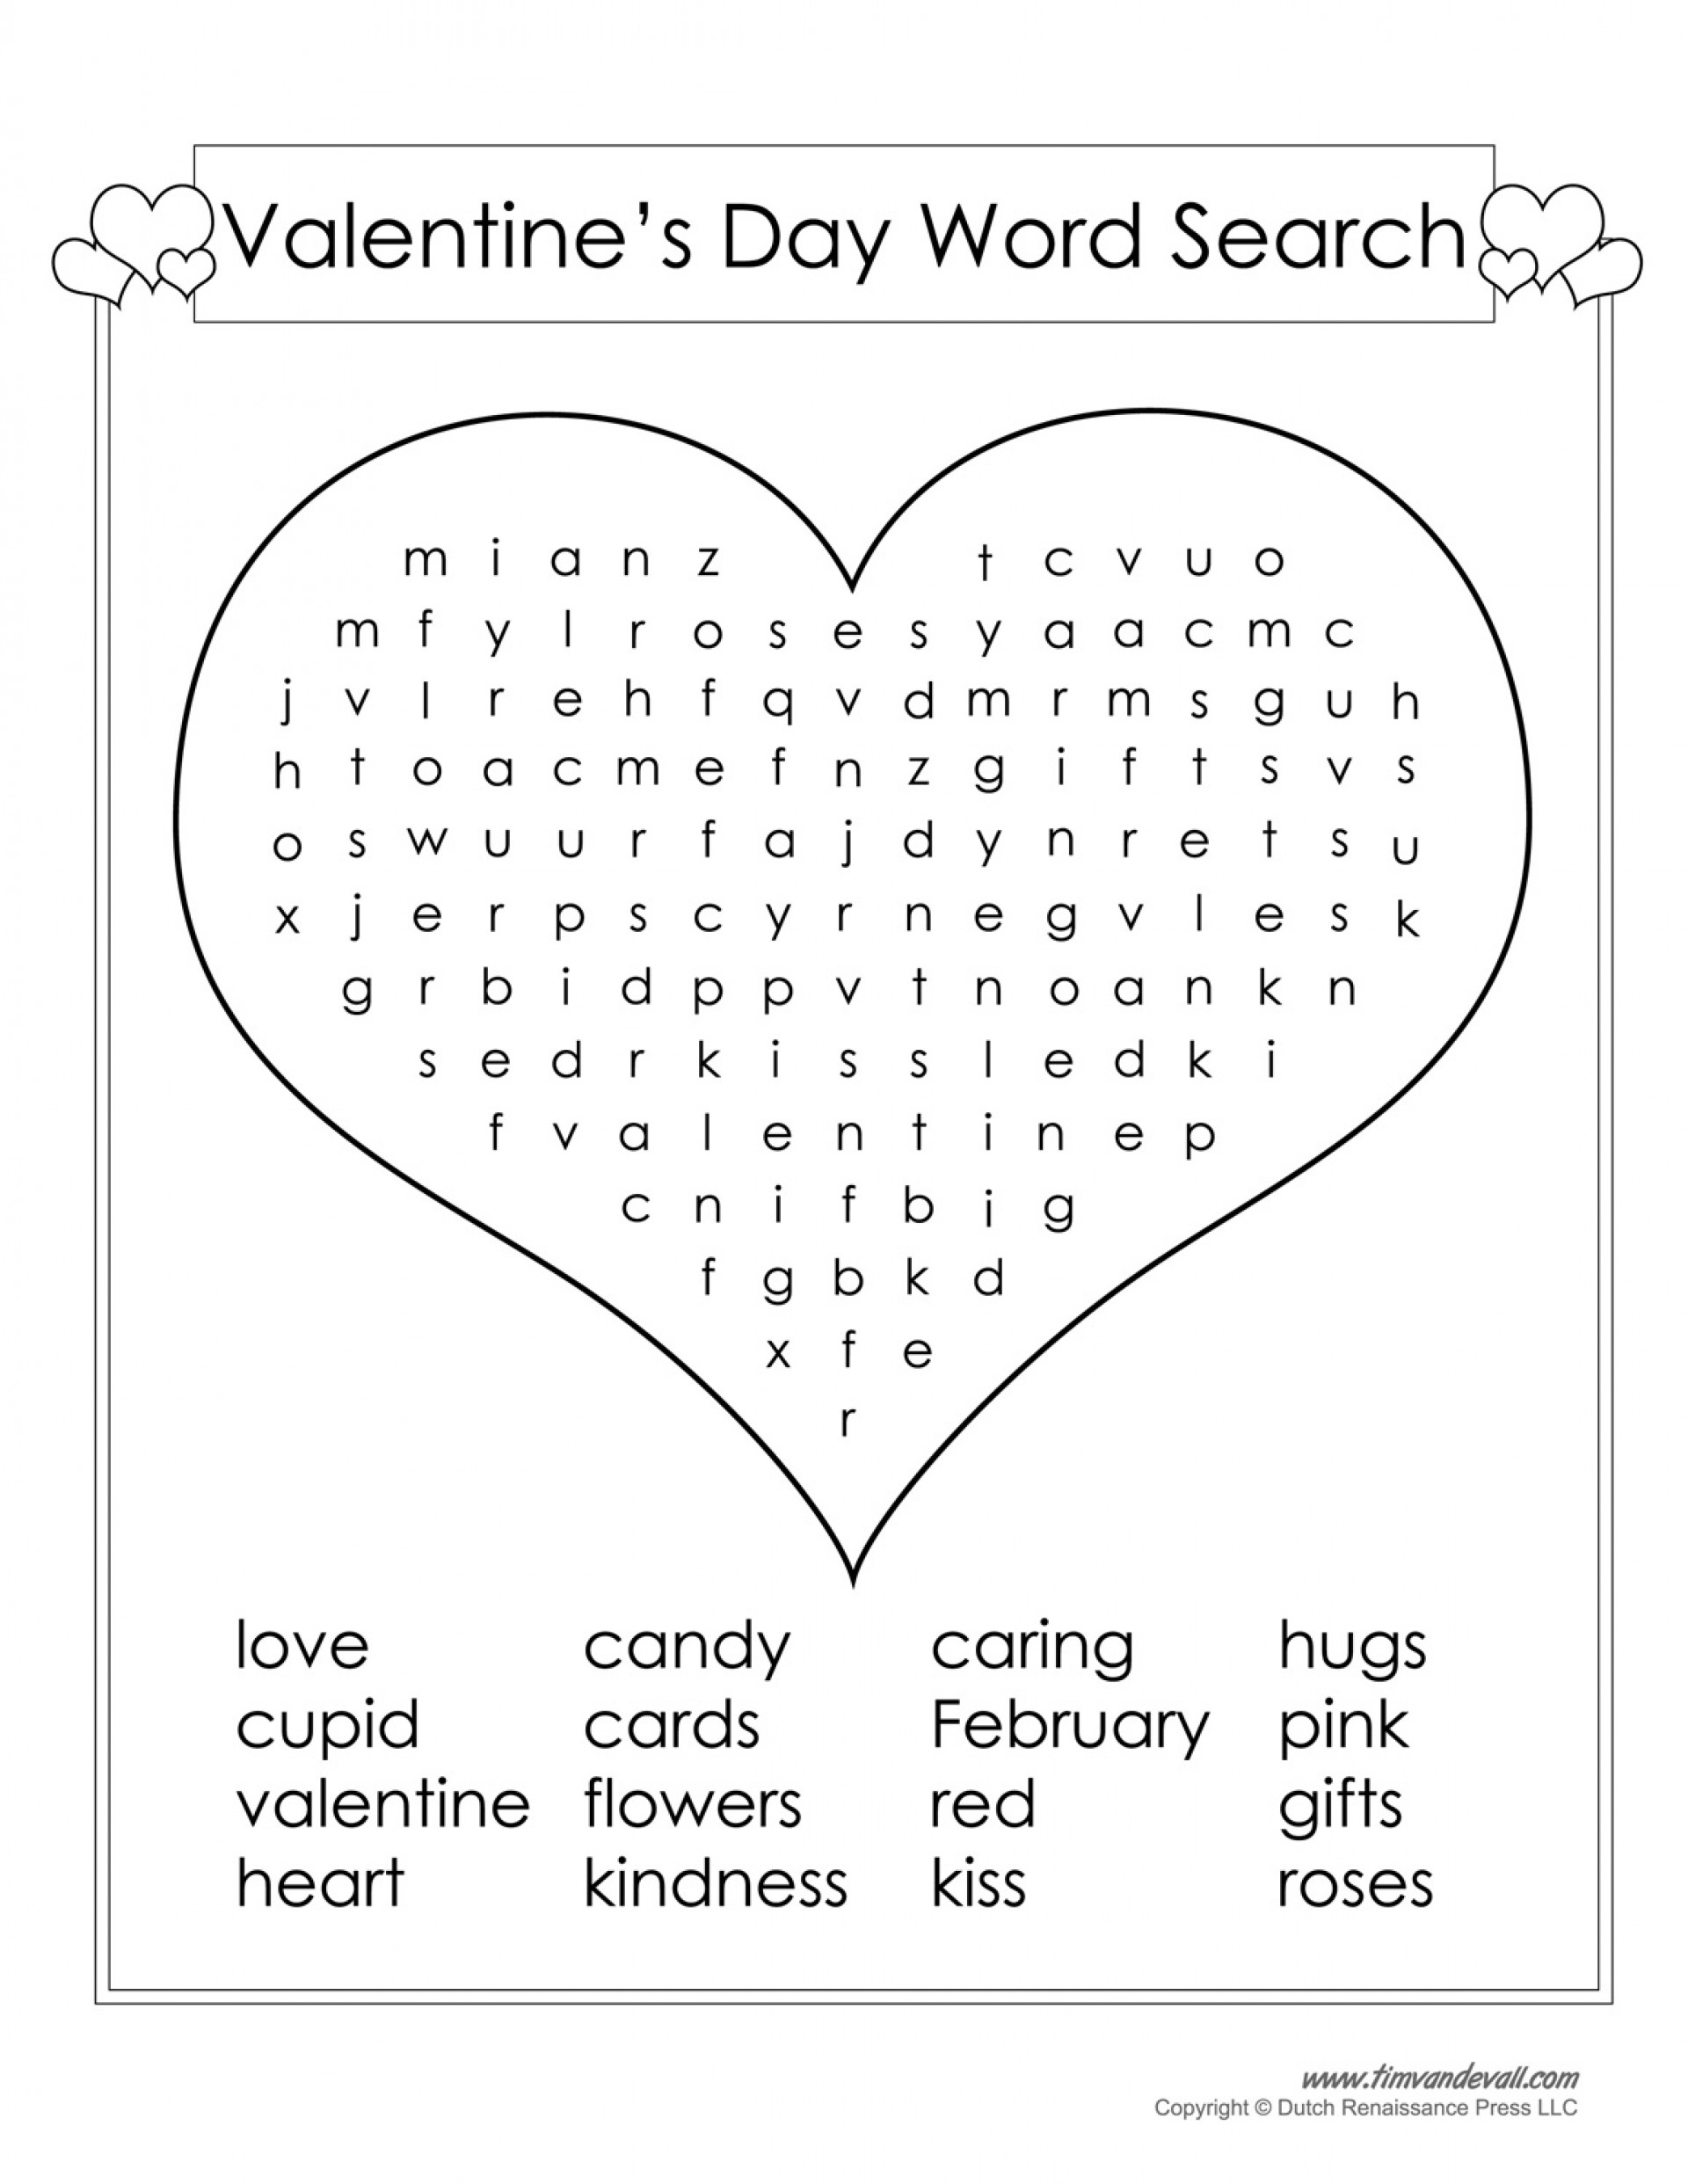 Valentines Day Word Search Large Light Pink Valentine S Crossword - Free Printable Valentines Crossword